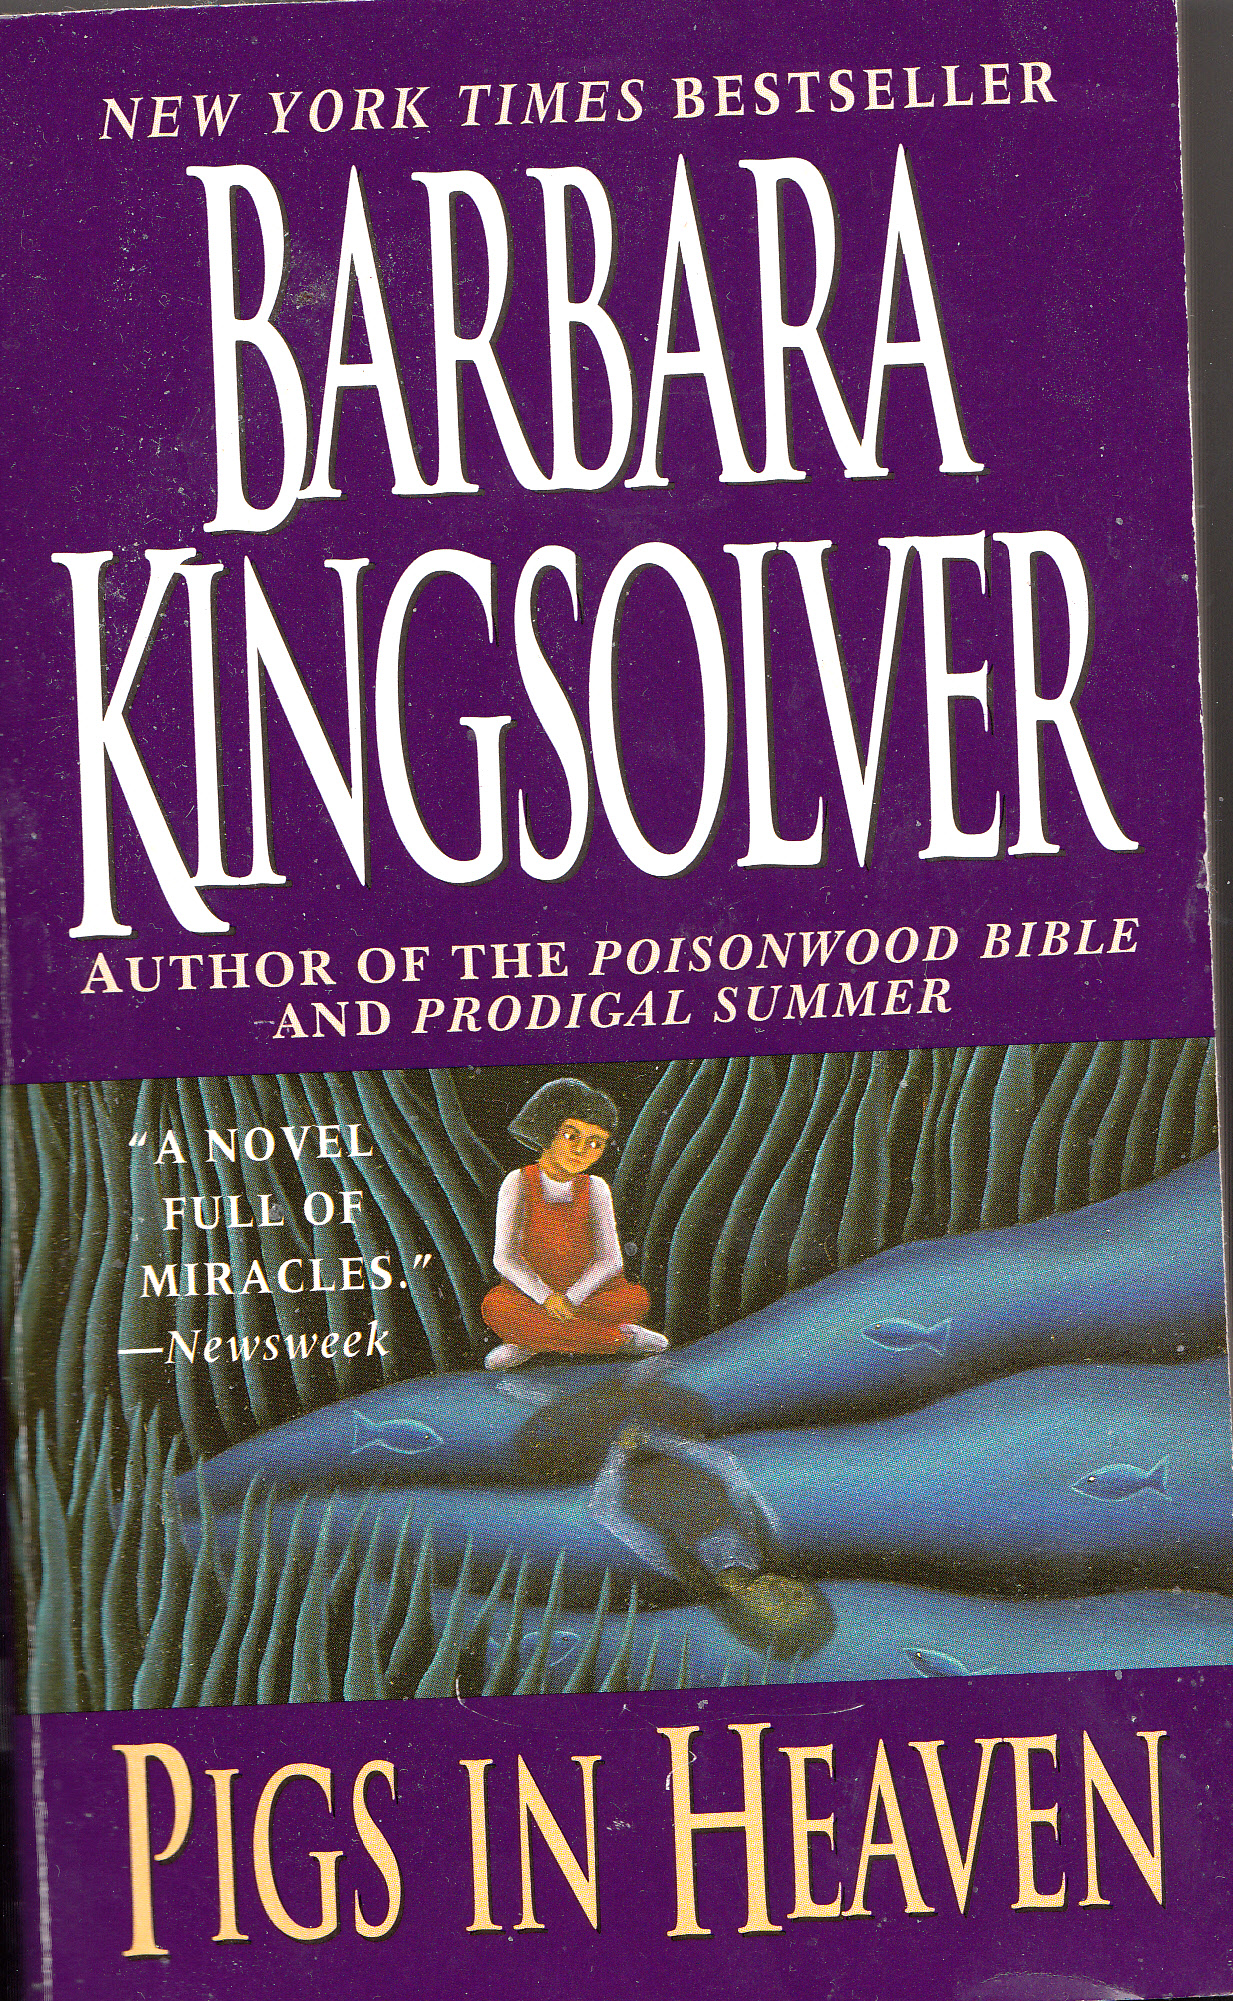 barbara kingsolver her life her work her words learn more  pigs in heaven